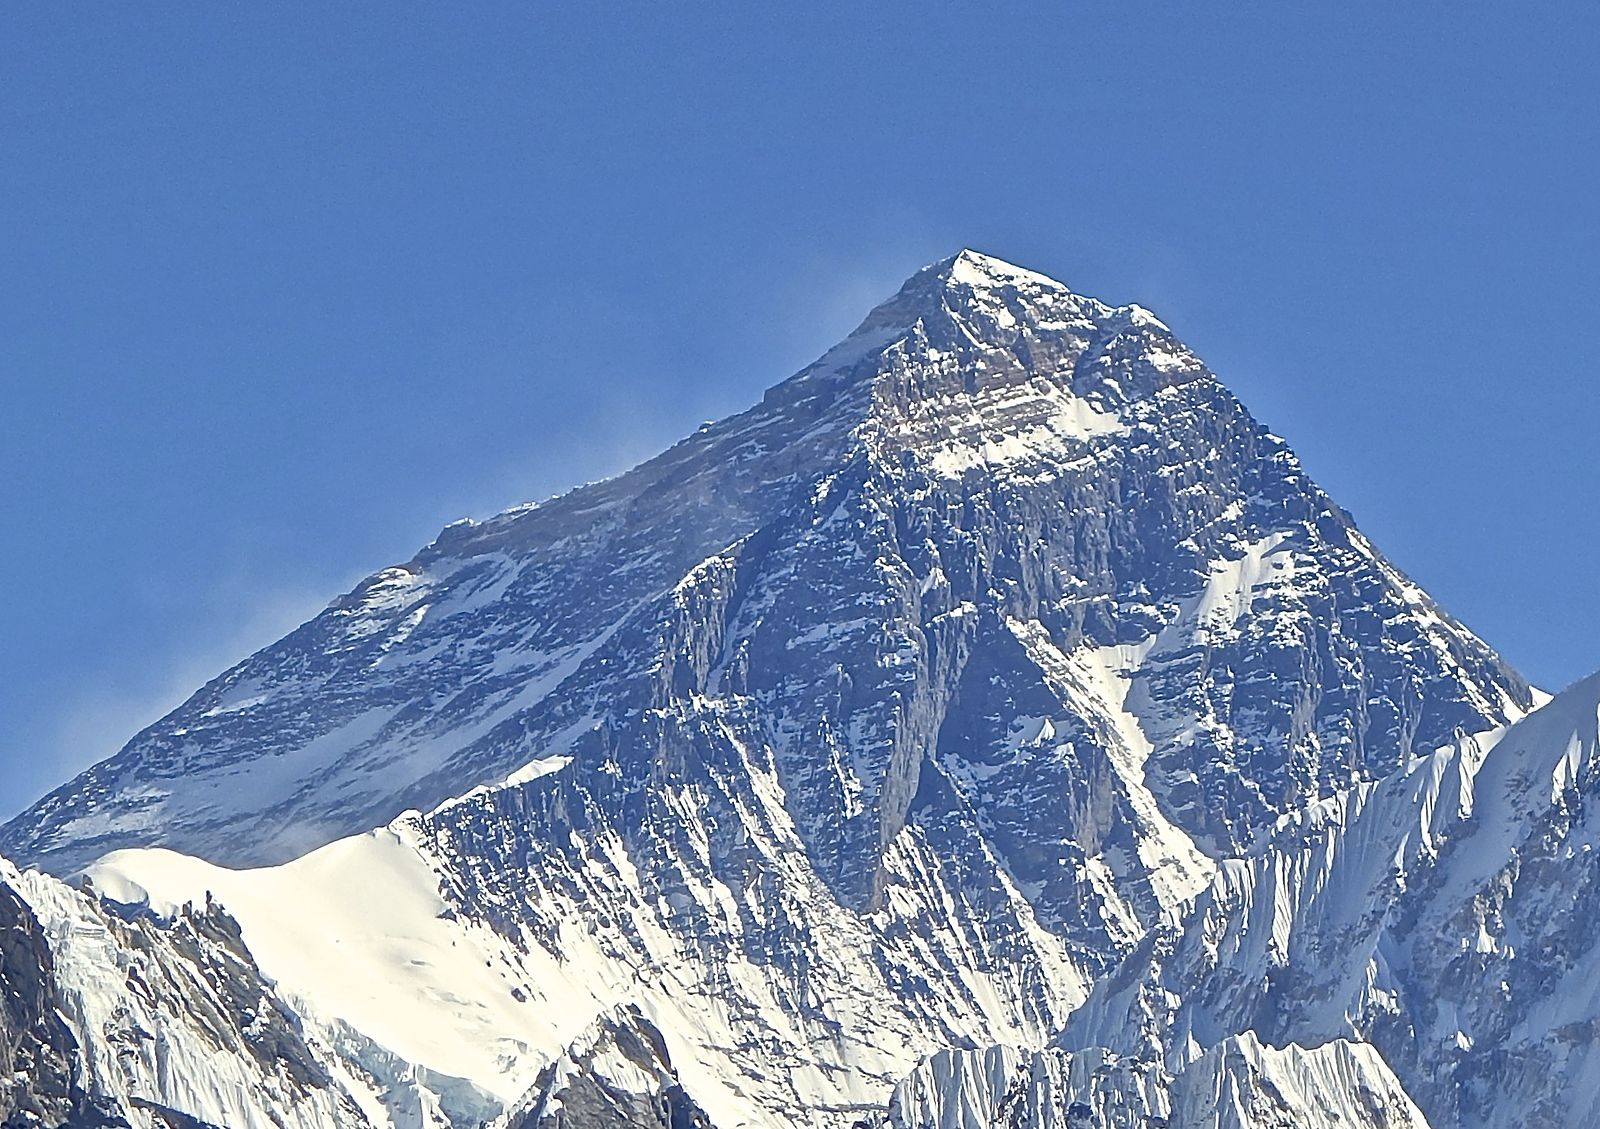 1600px Mt. Everest from Gokyo Ri November 5, 2012 Cropped